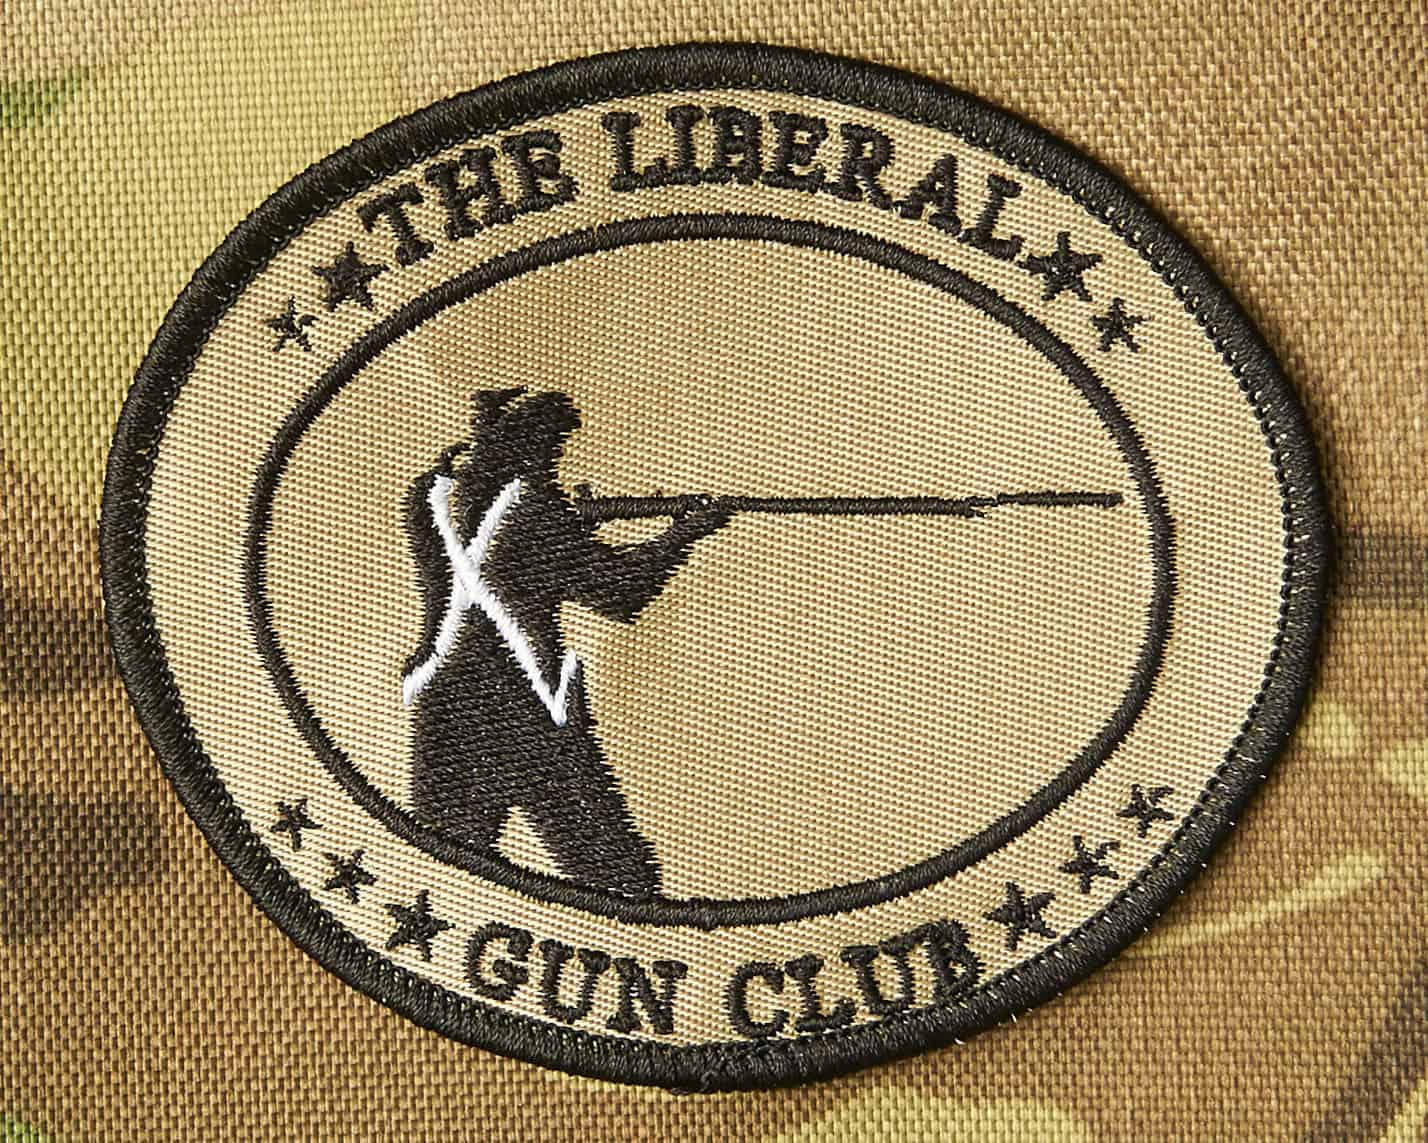 lgc subdued patch the liberal gun club lgc subdued patch